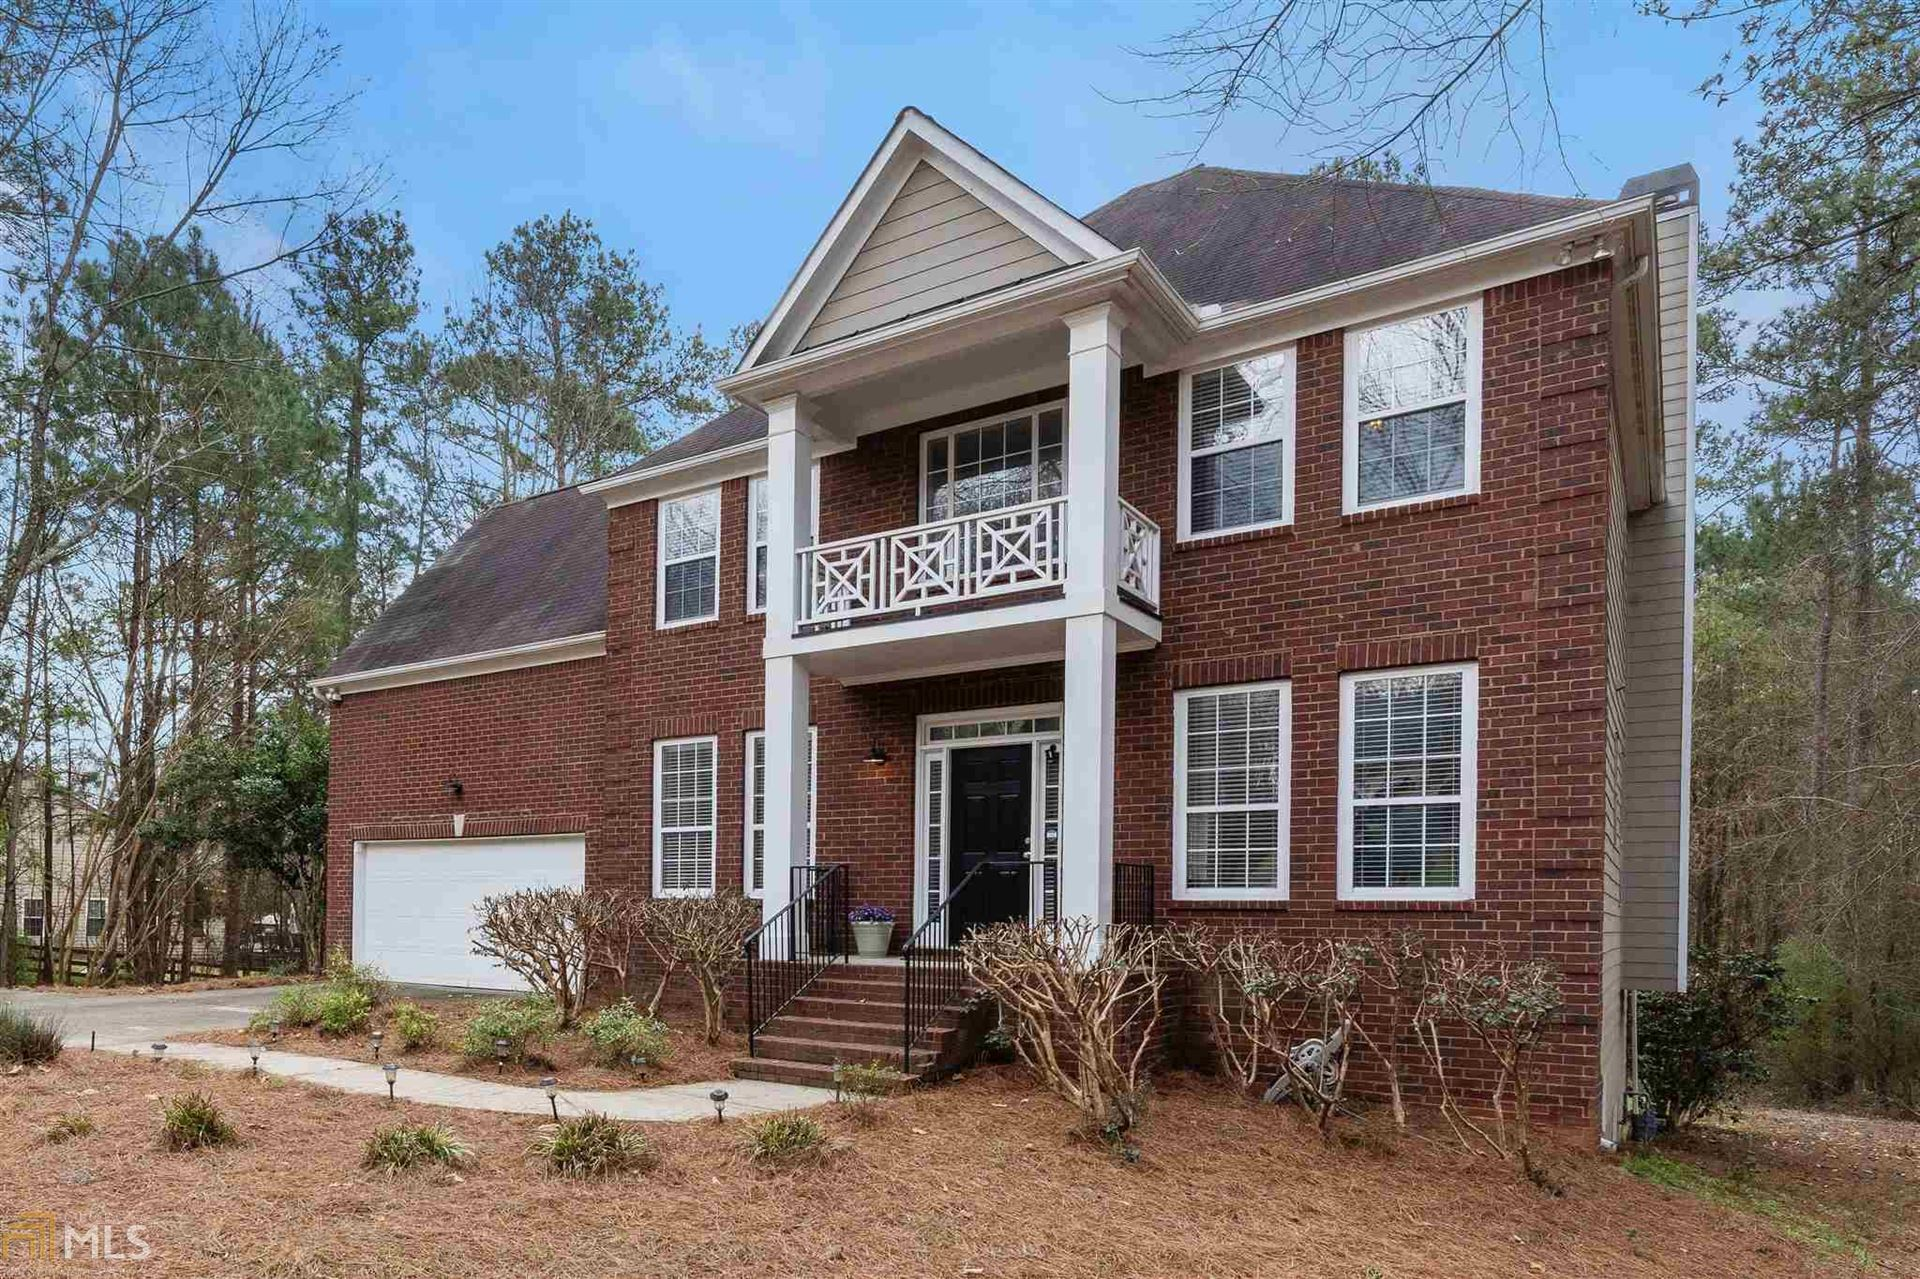 2305 Northwood Dr, Marietta, GA 30004 - #: 8757873